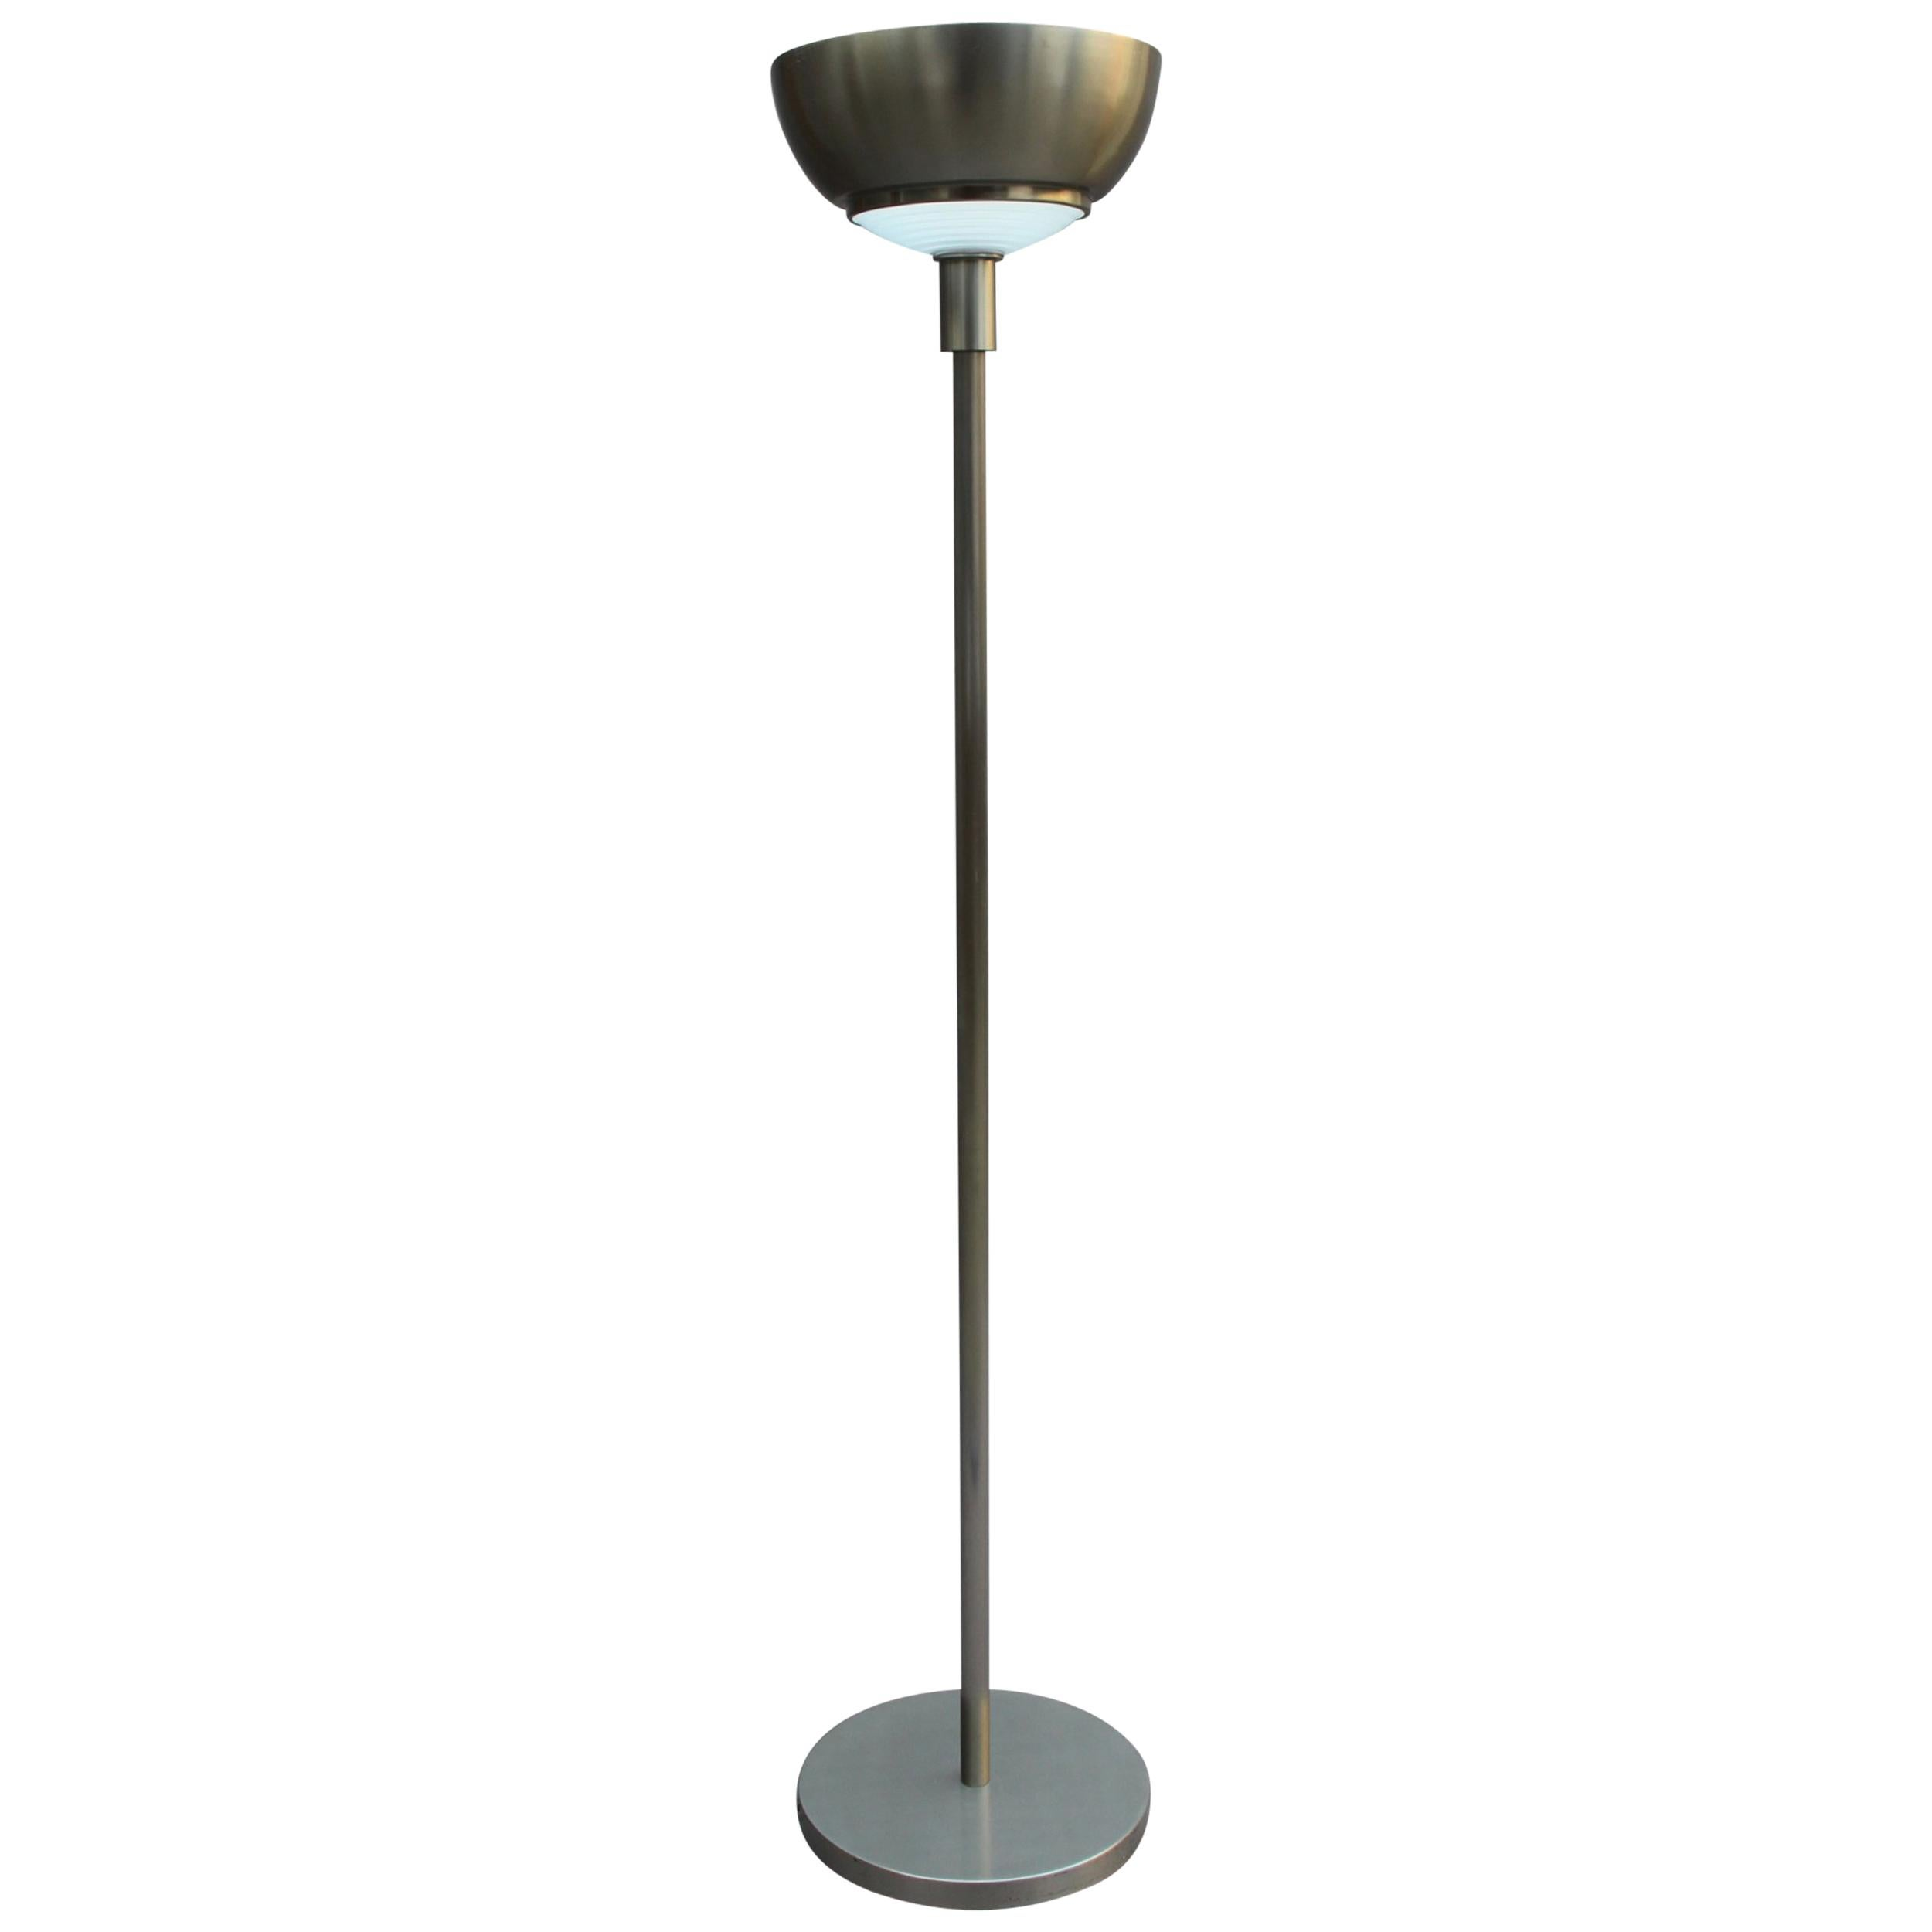 Fine French Art Deco Nickel and Glass Floor Lamp by Jean Perzel